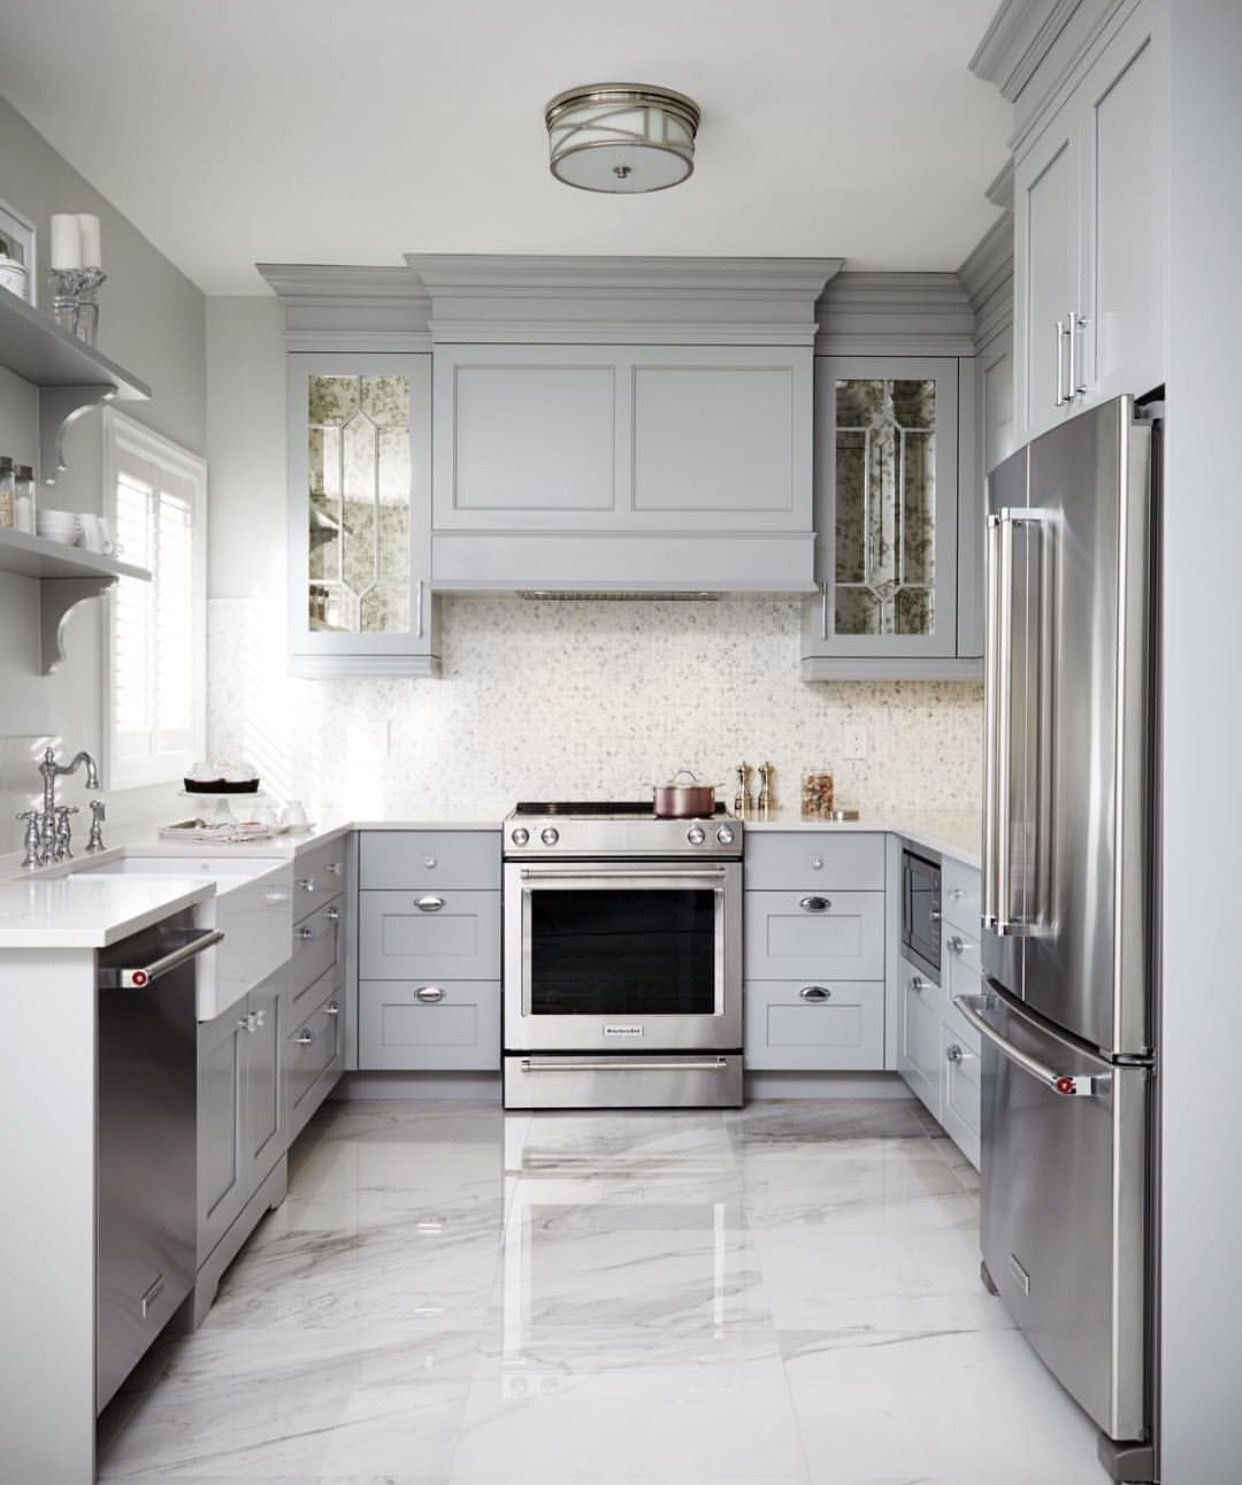 Grey Kitchen Ideas That Are Sophisticated And Stylish: Pin By Tiffany Owens On Kitchen